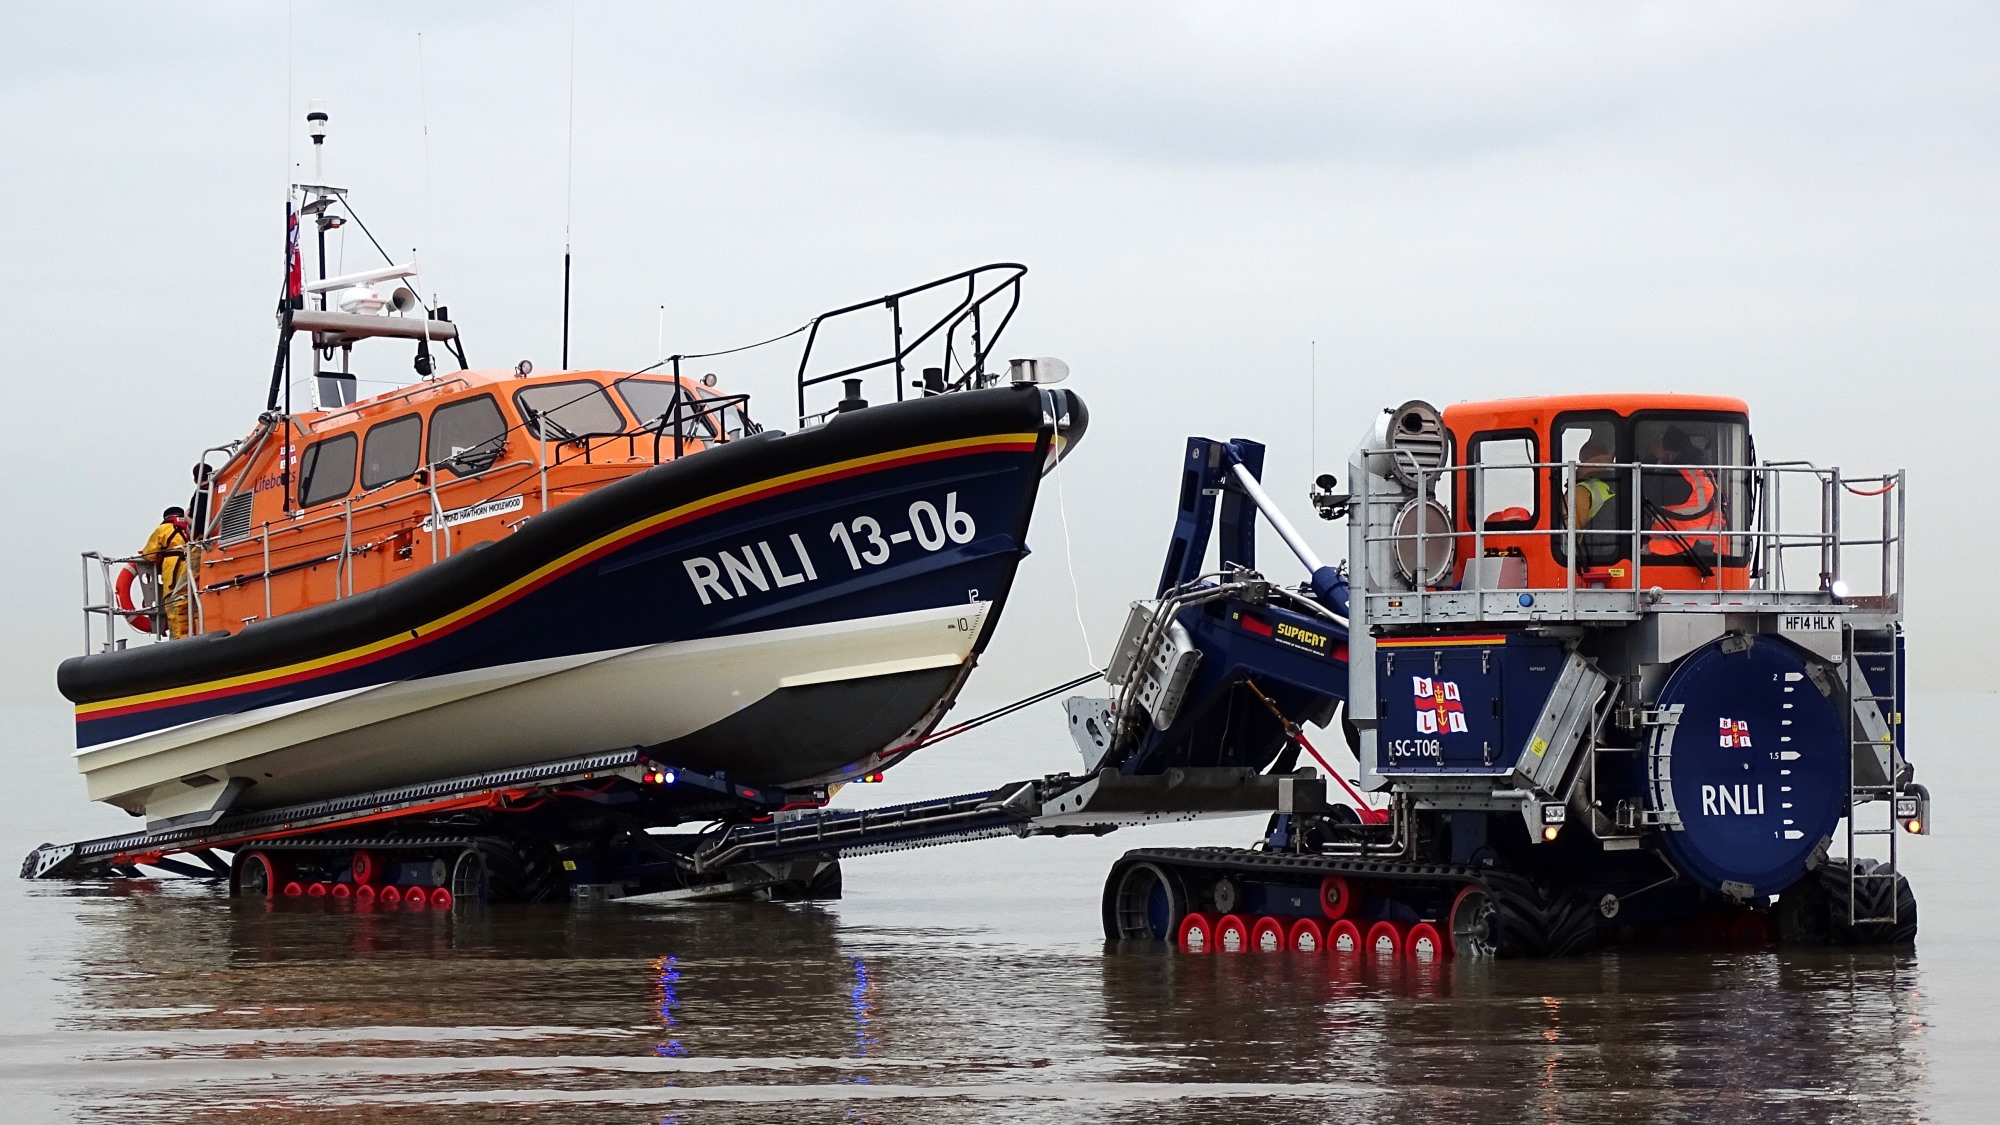 Hoylake's Shannon class lifeboat, Edmund Hawthorn Micklewood 13-06, being recovered by her launch and recovery tractor, Roland Hough